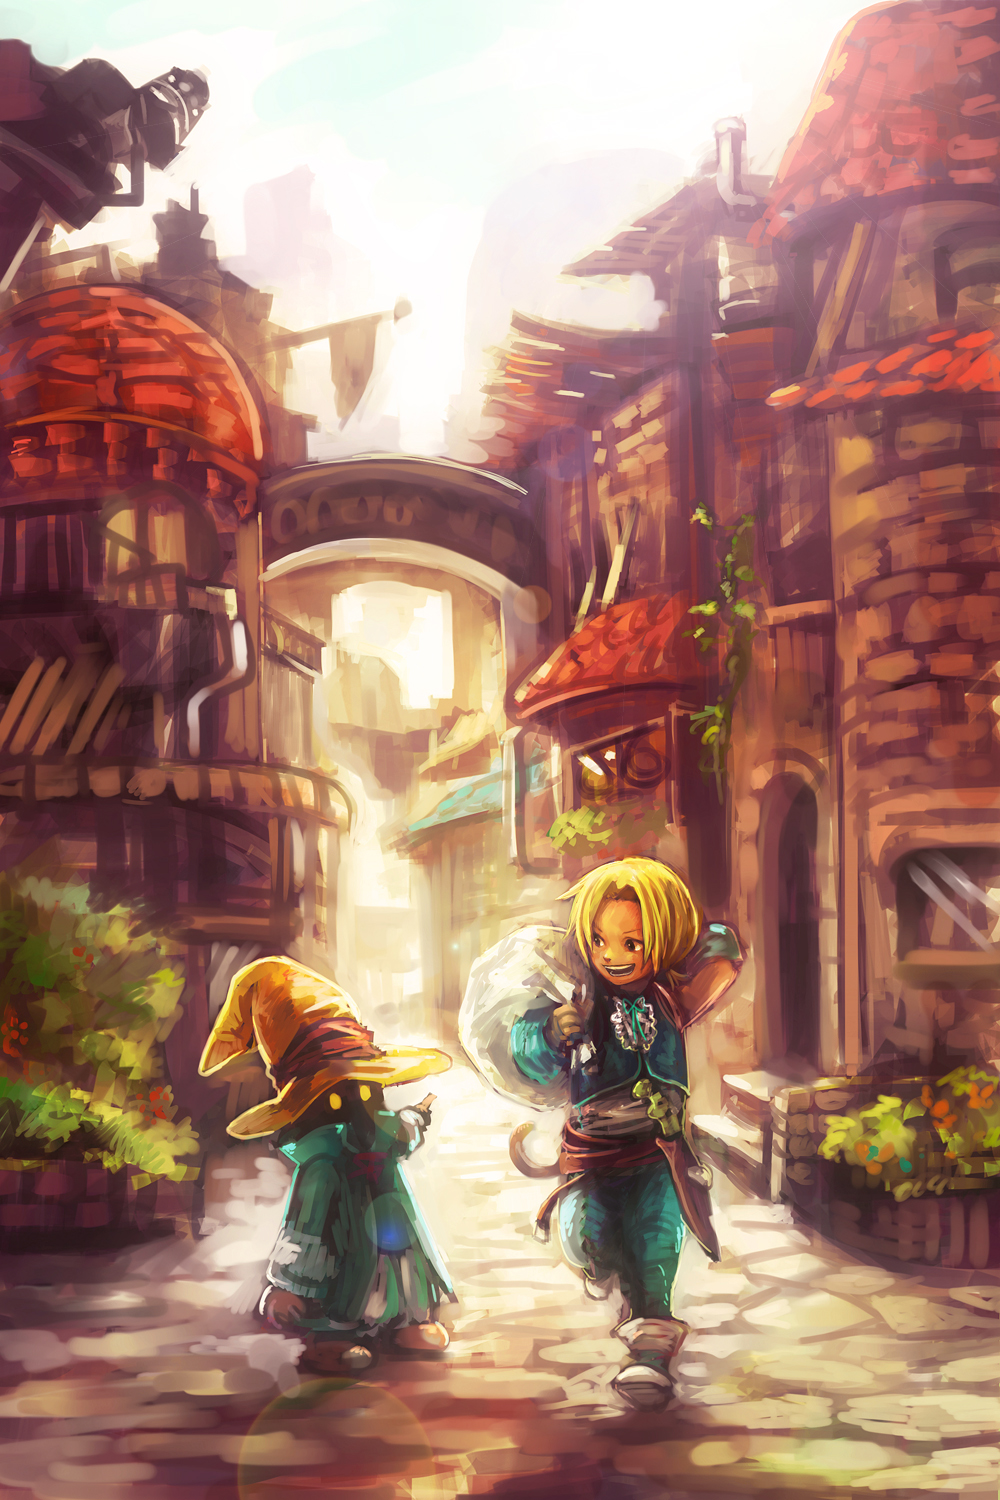 Final Fantasy Ix Mobile Wallpaper 1391398 Zerochan Anime Image